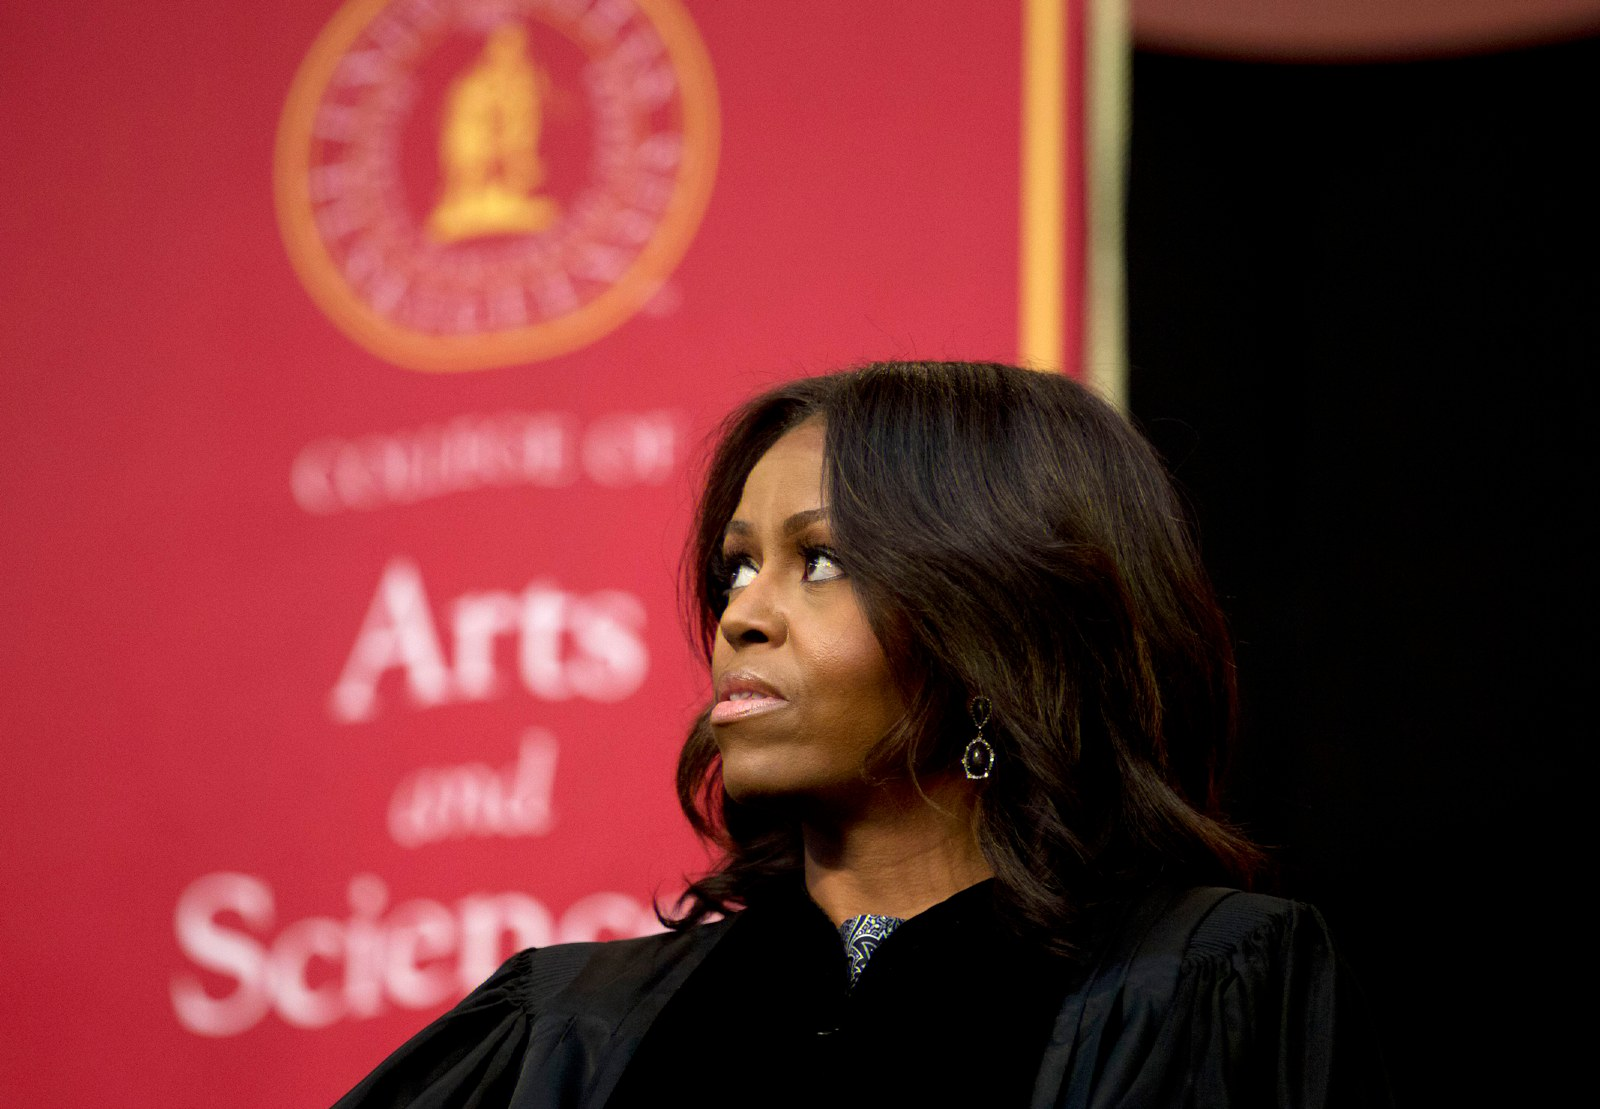 Michelle Obama at Tuskegee.jpg